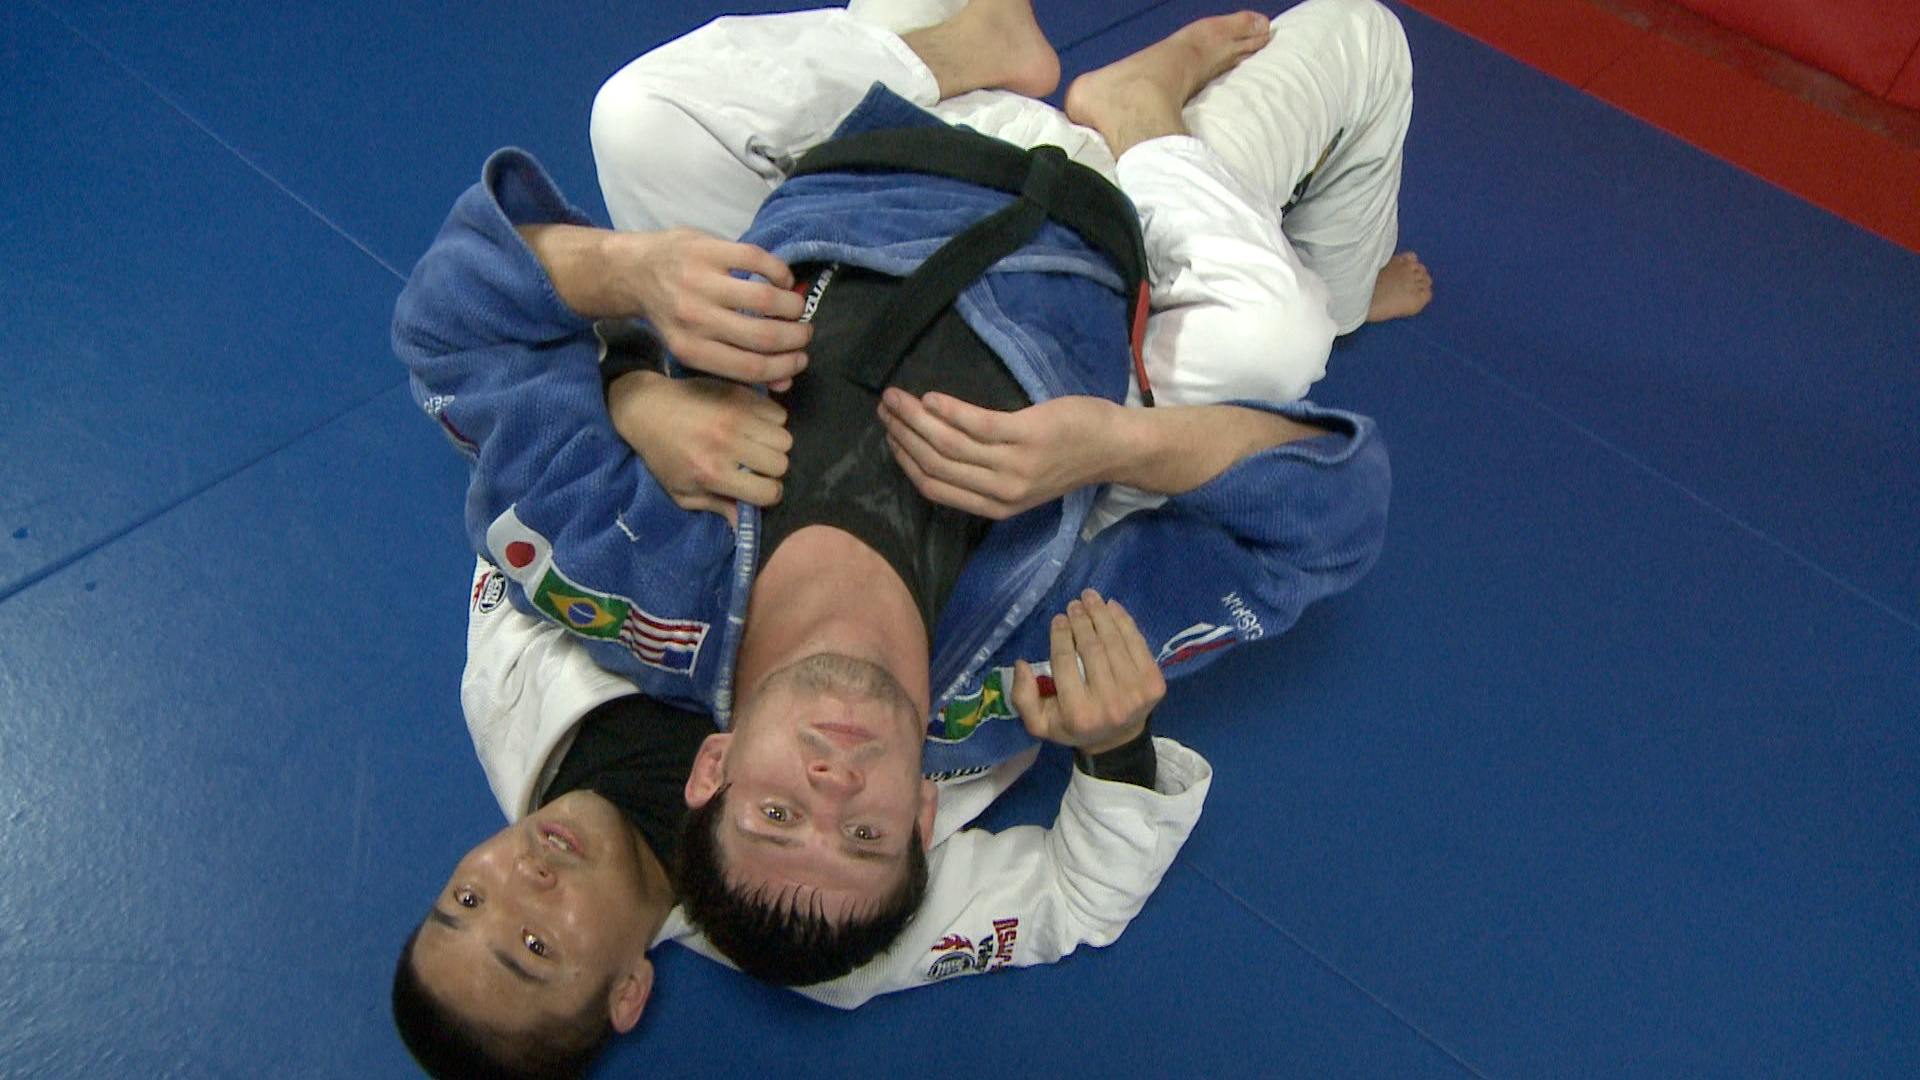 ATAC TV MMA Lapel Choke from the Rear